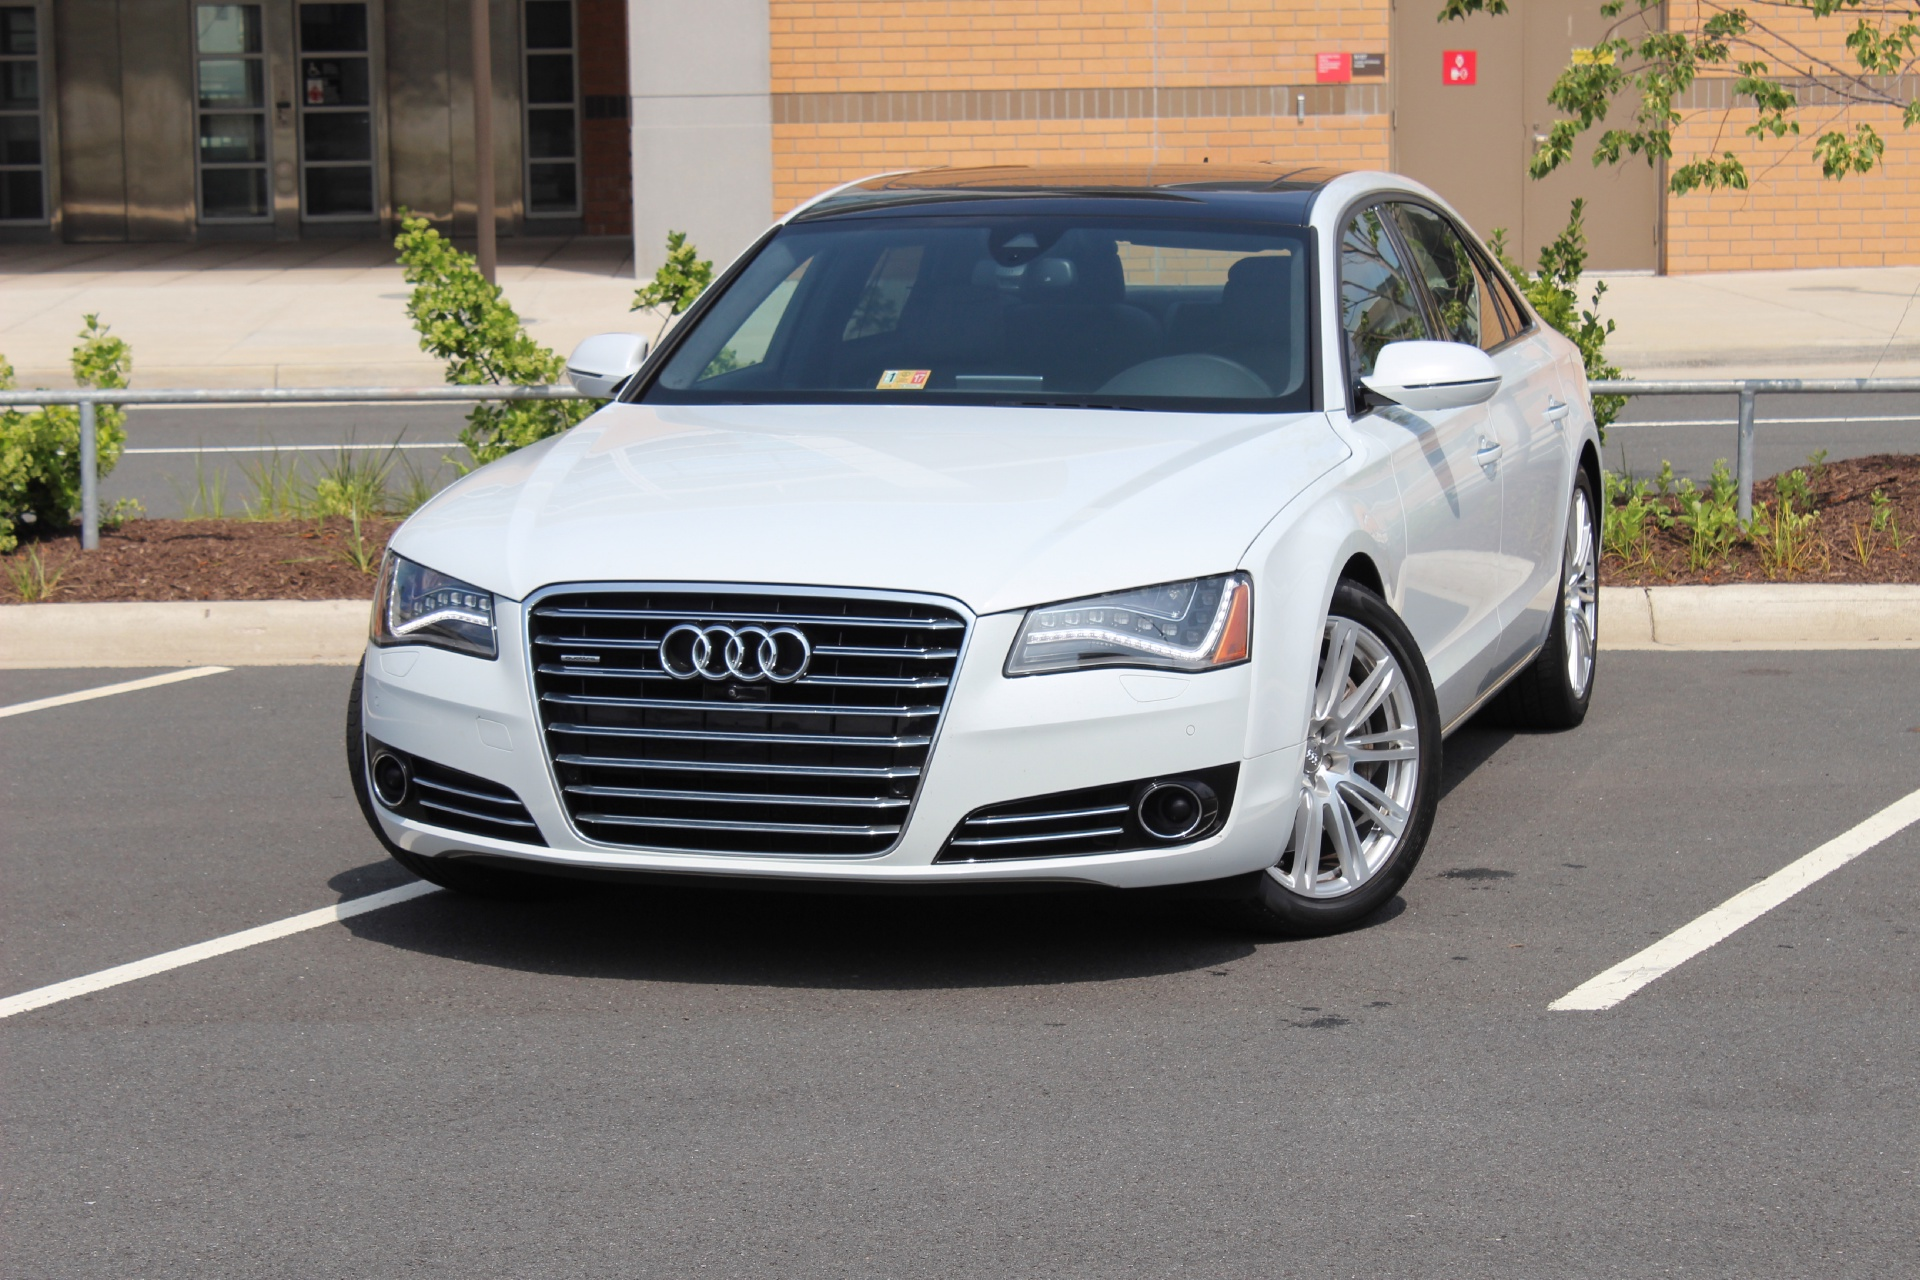 popular audi of plus pict the fascinating city premium and in xcode ideas automotive virginia new va select dealers a arlington dealership best